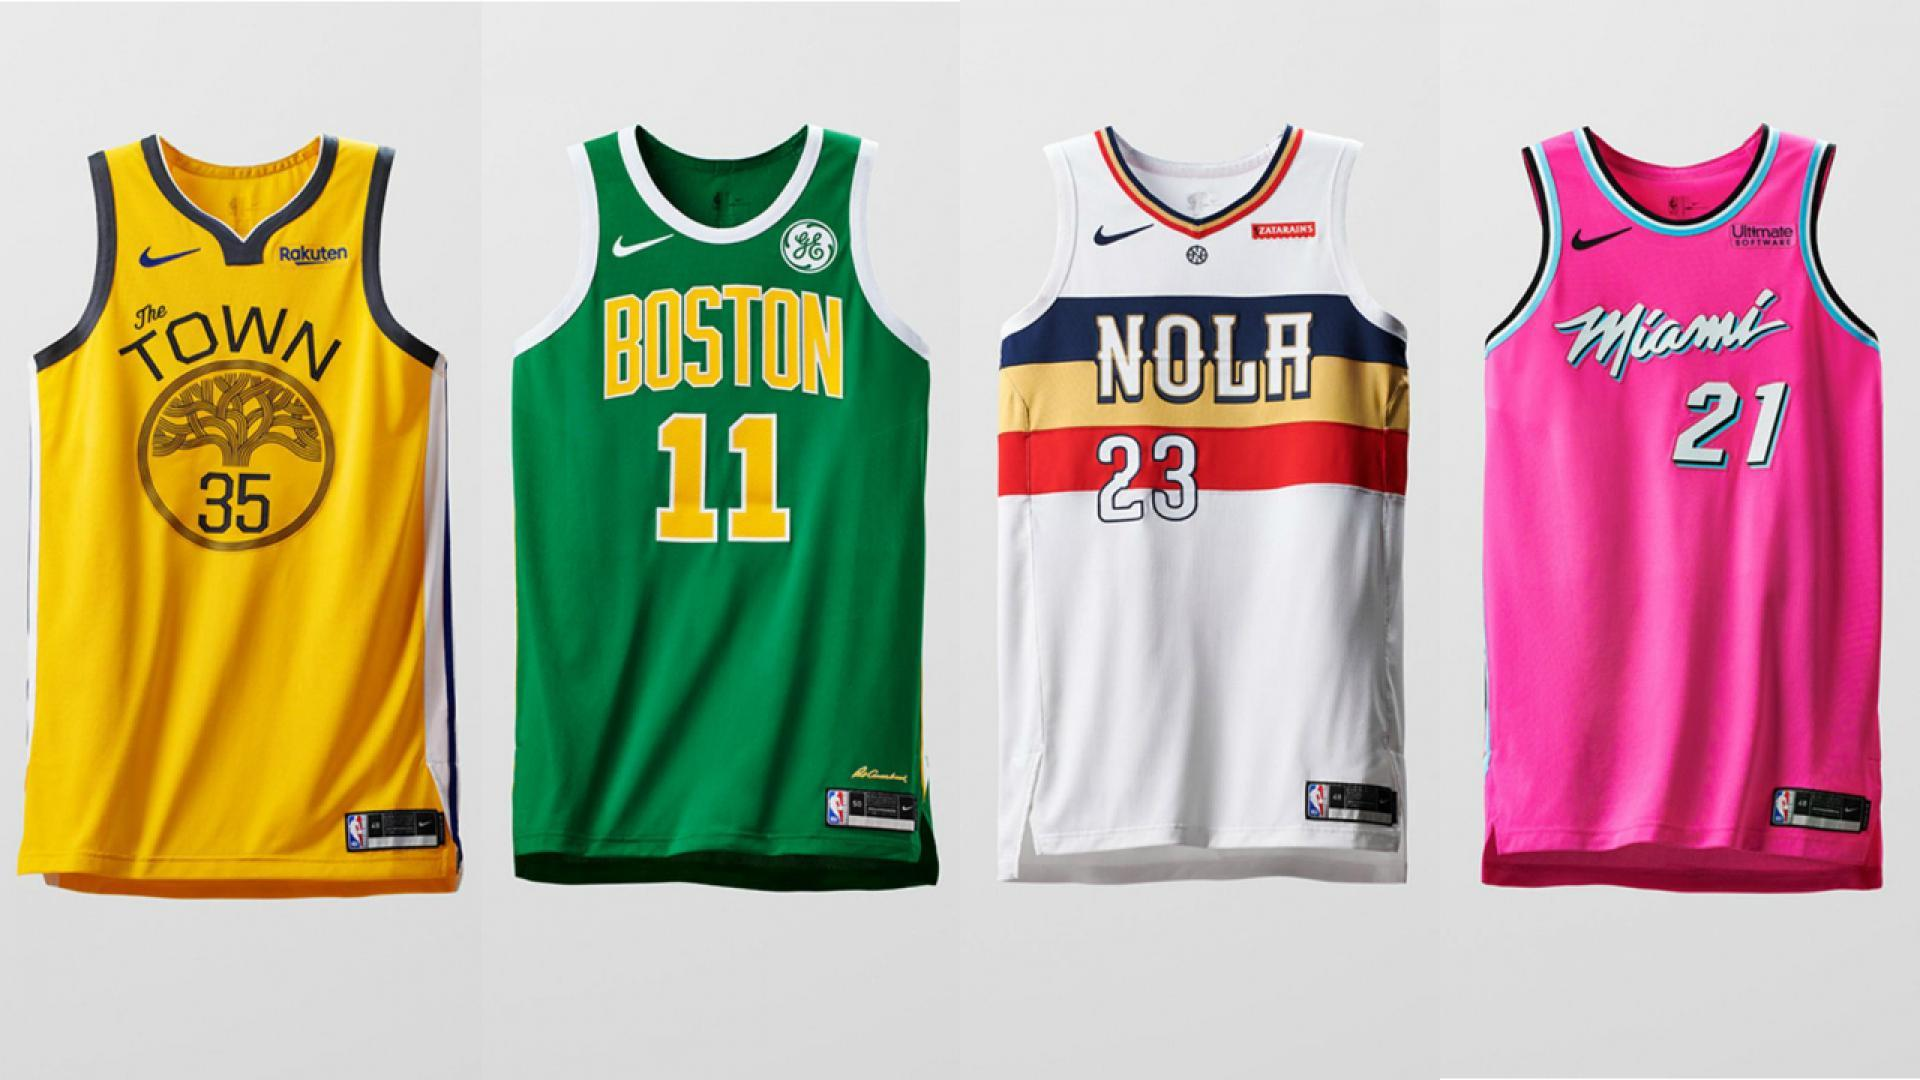 Nike unveils Earned Edition uniforms; Celtics' version to debut on Christmas